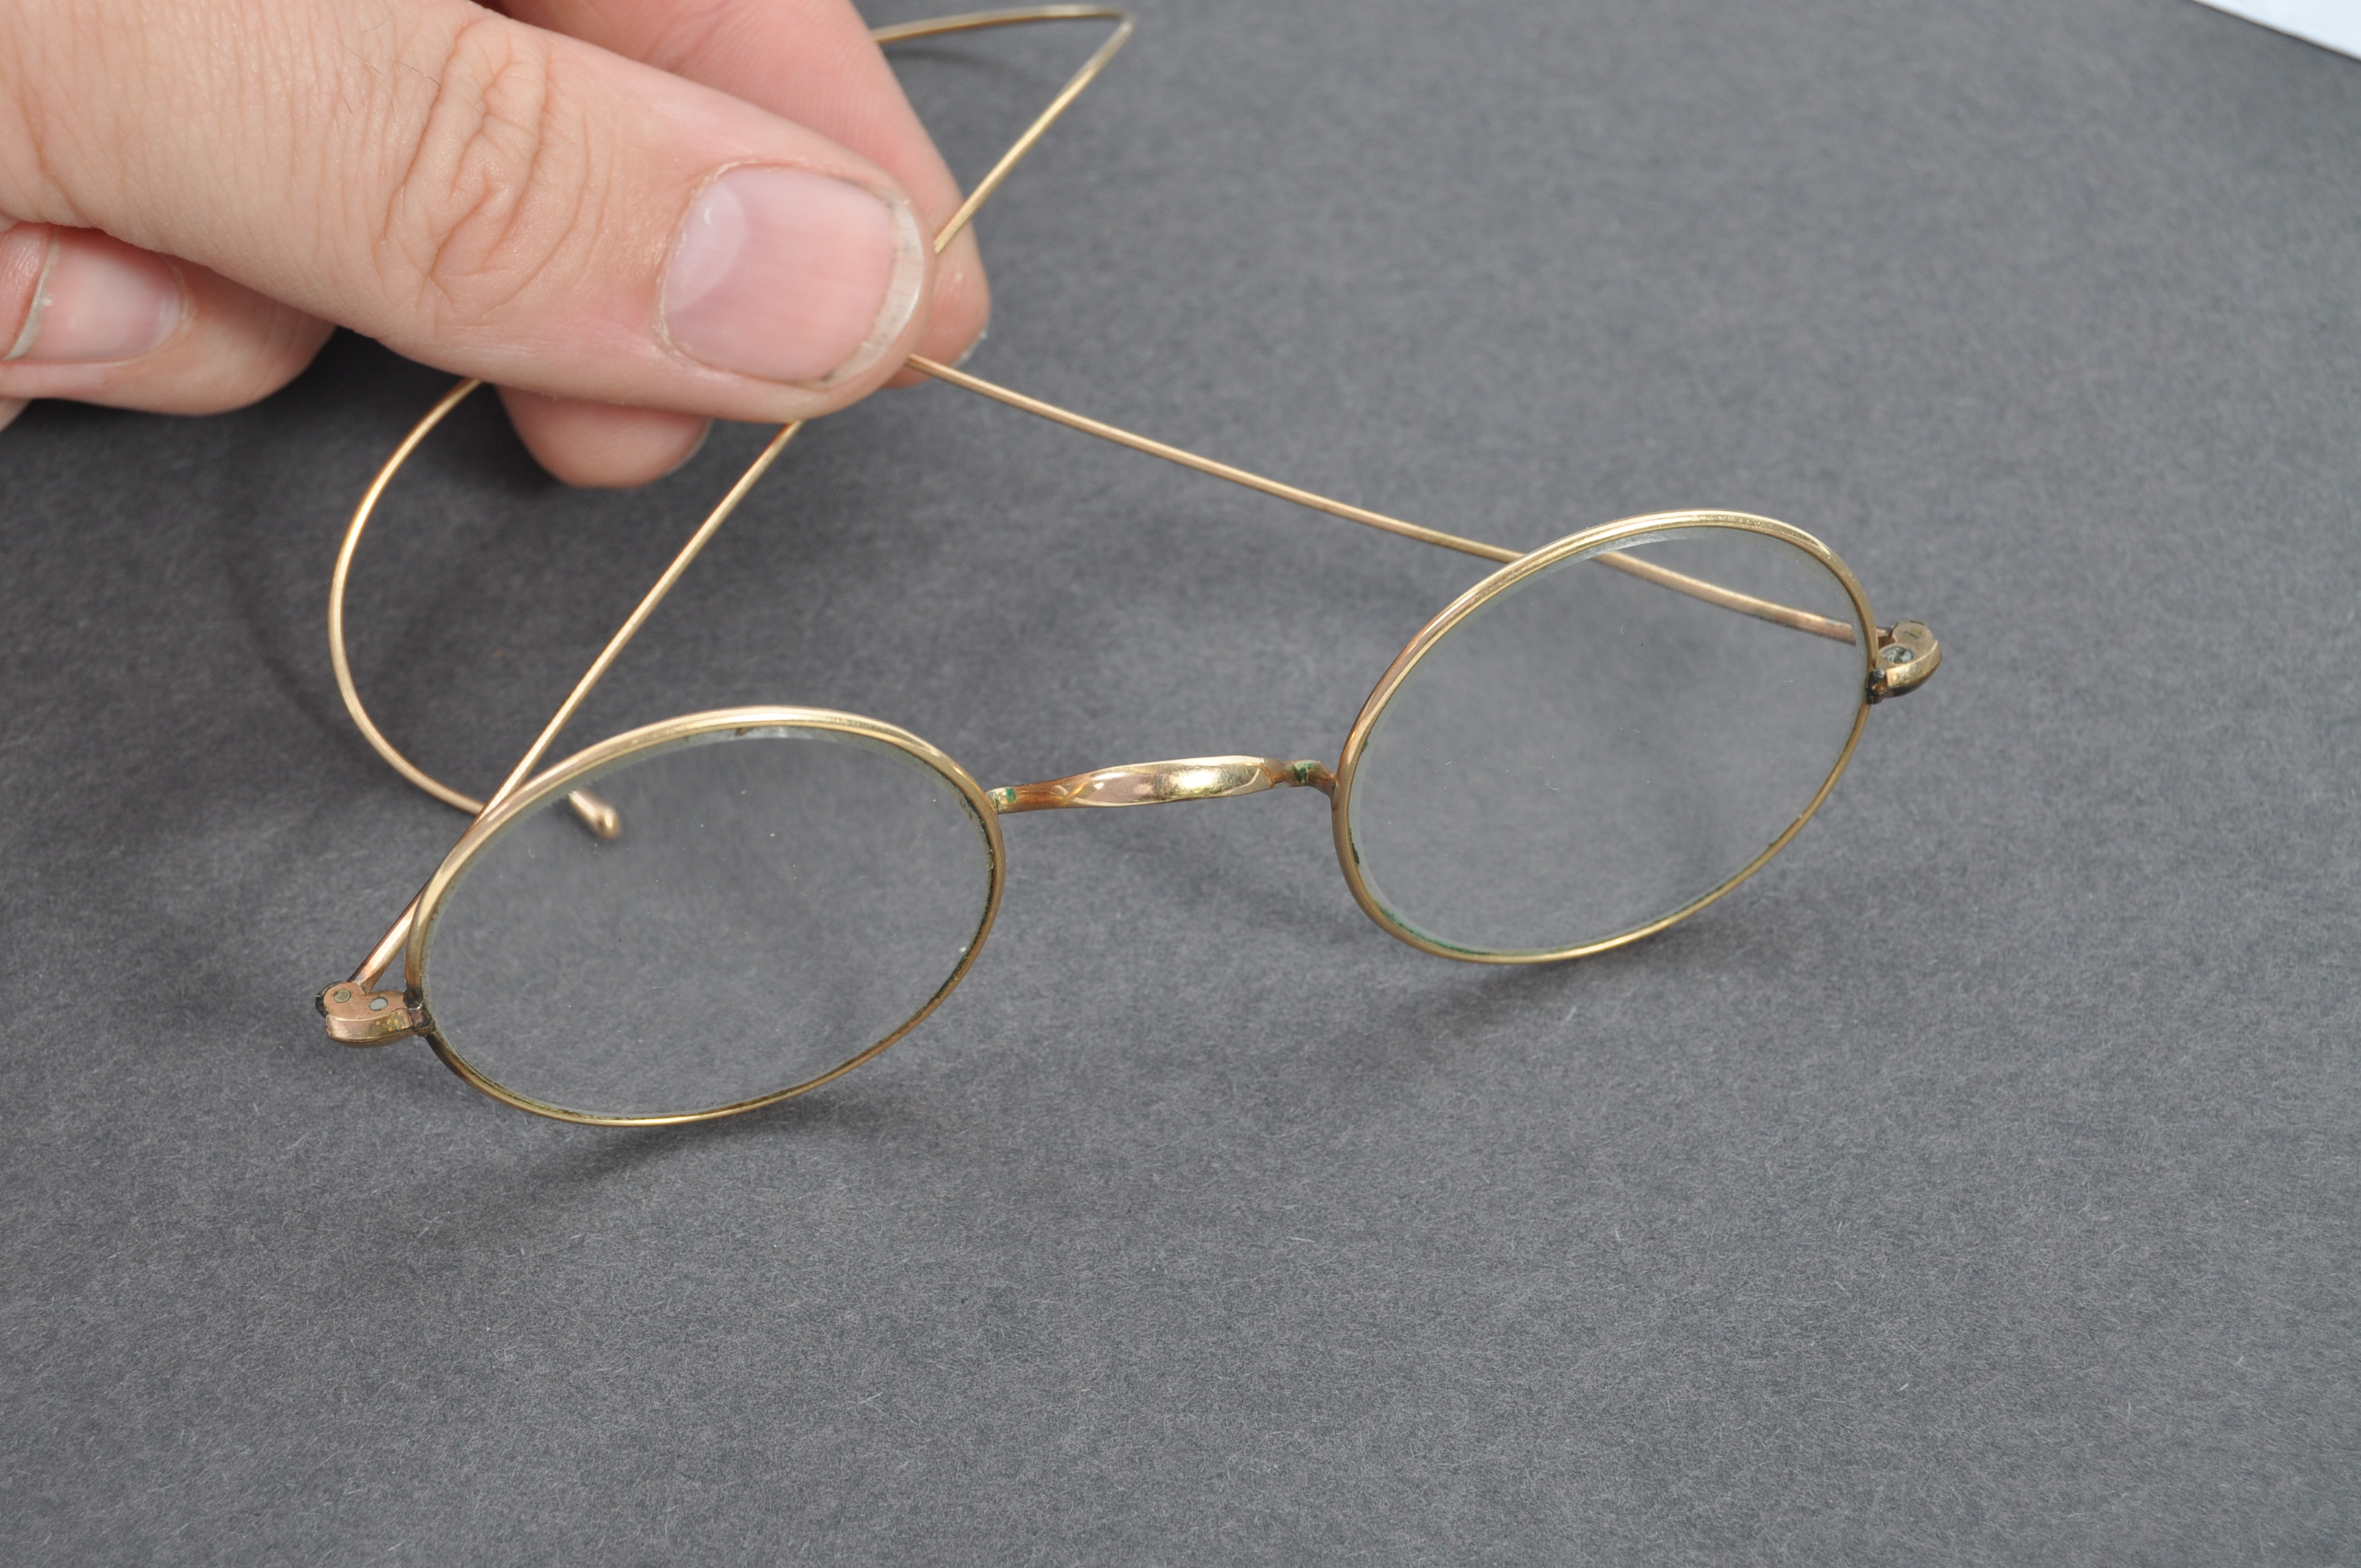 PAIR OF MATHATMA GANDHI'S PERSONAL SPECTACLES - Image 7 of 7